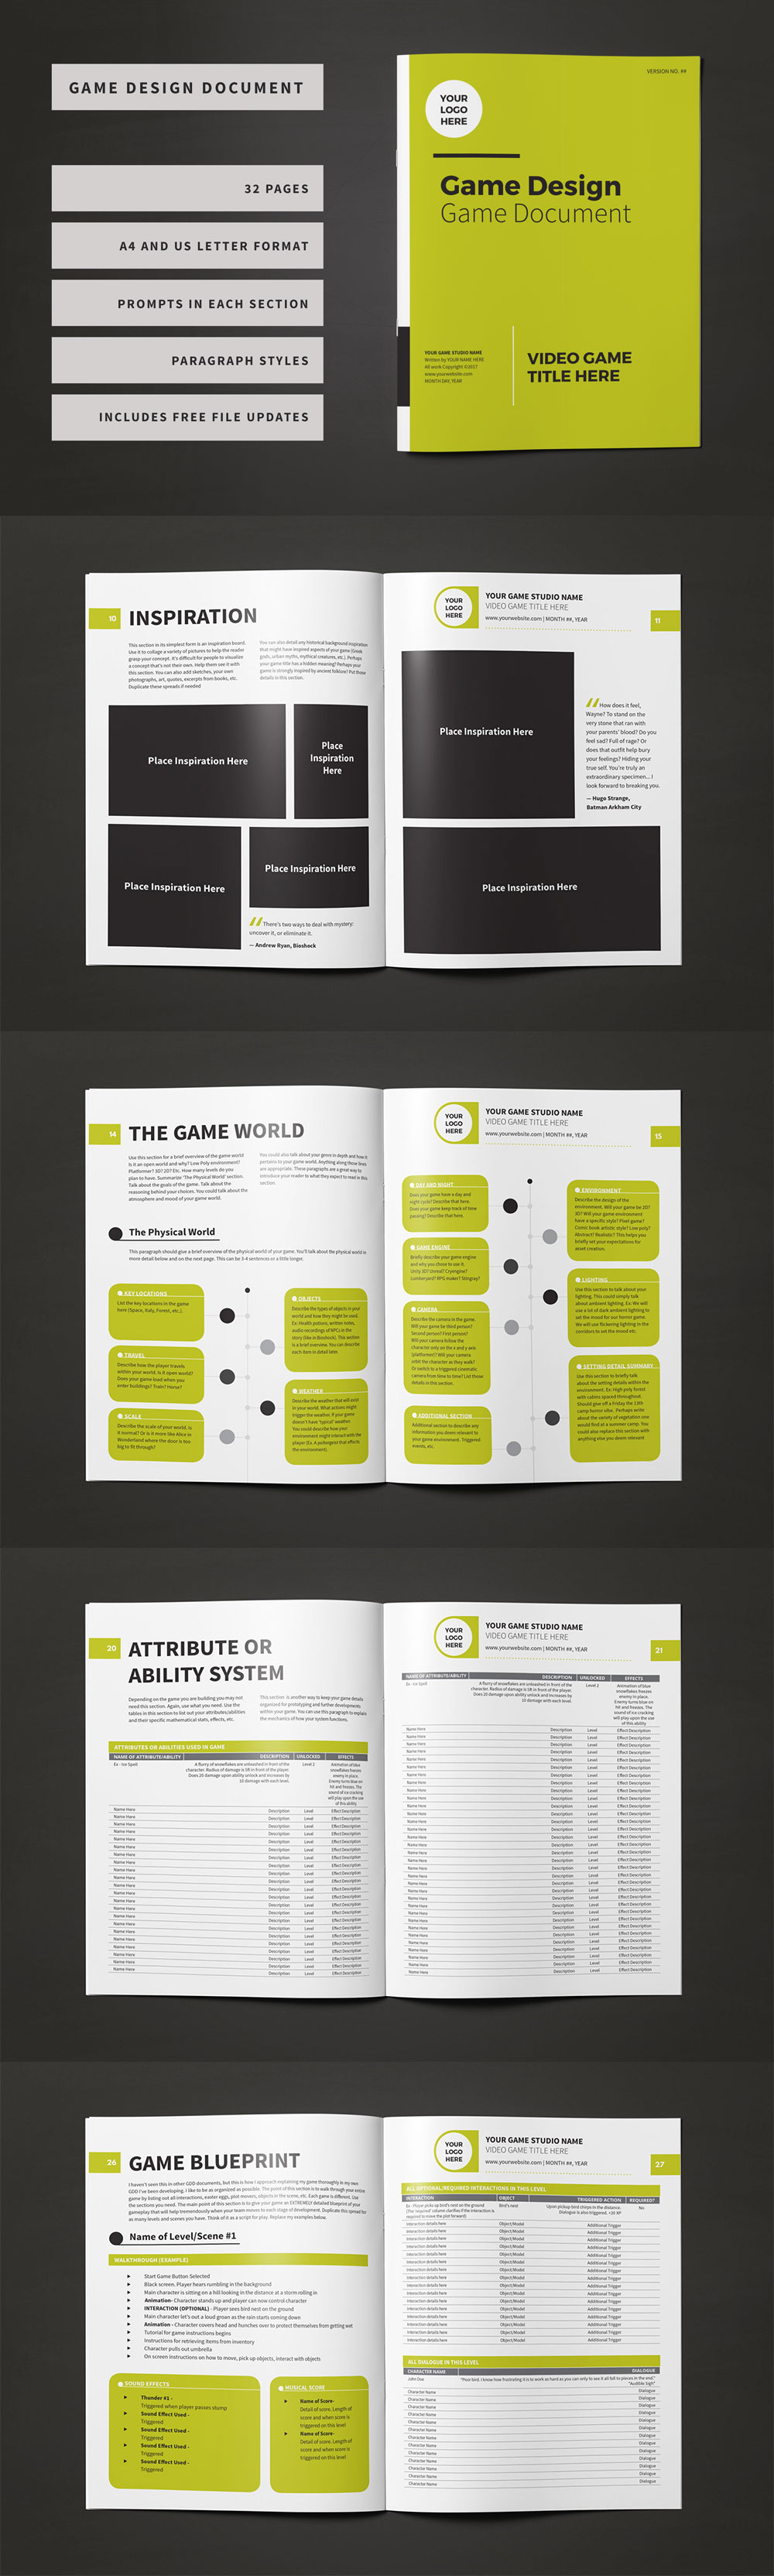 Game Design Document Template Gamedev Insp Pinterest Game - Game design document download